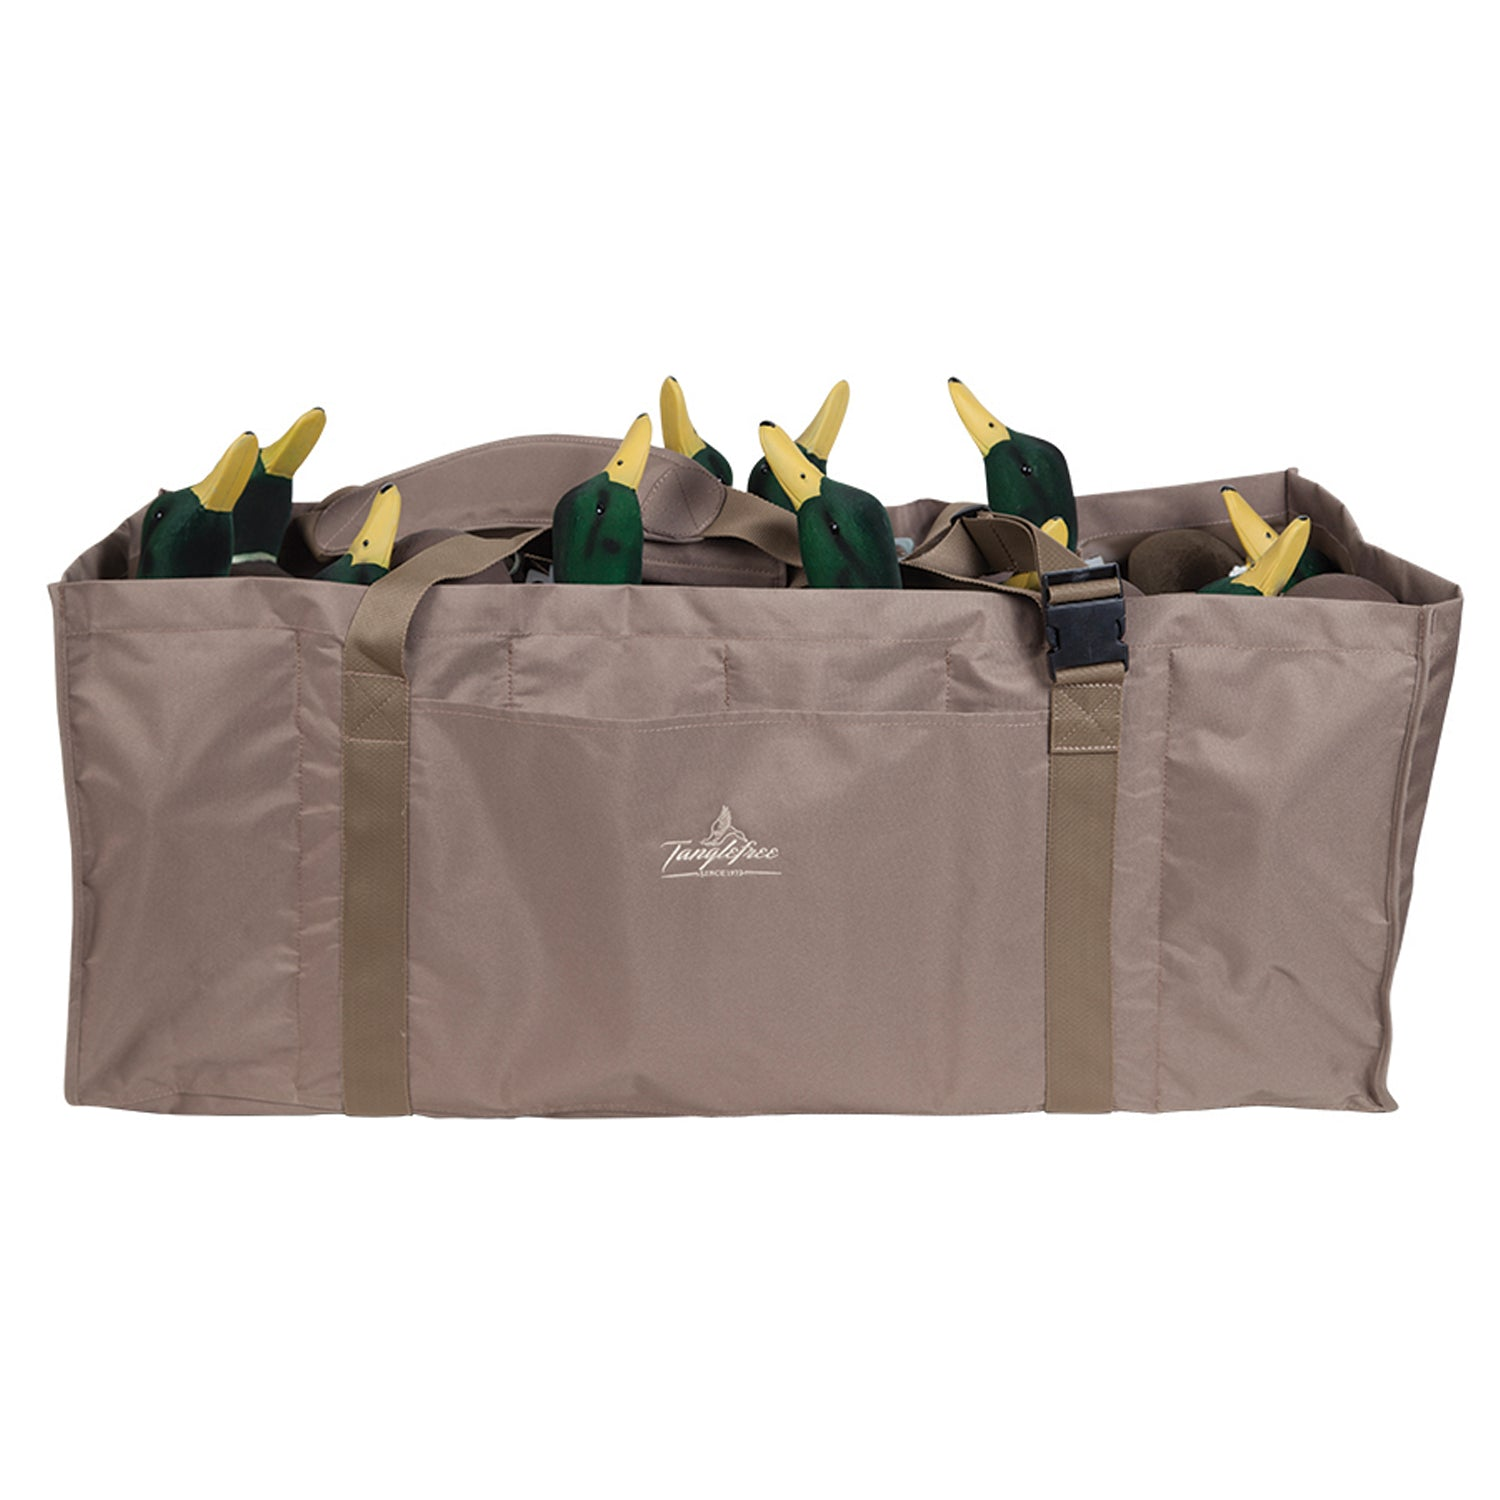 12 Slot Decoy Bag - Dirt